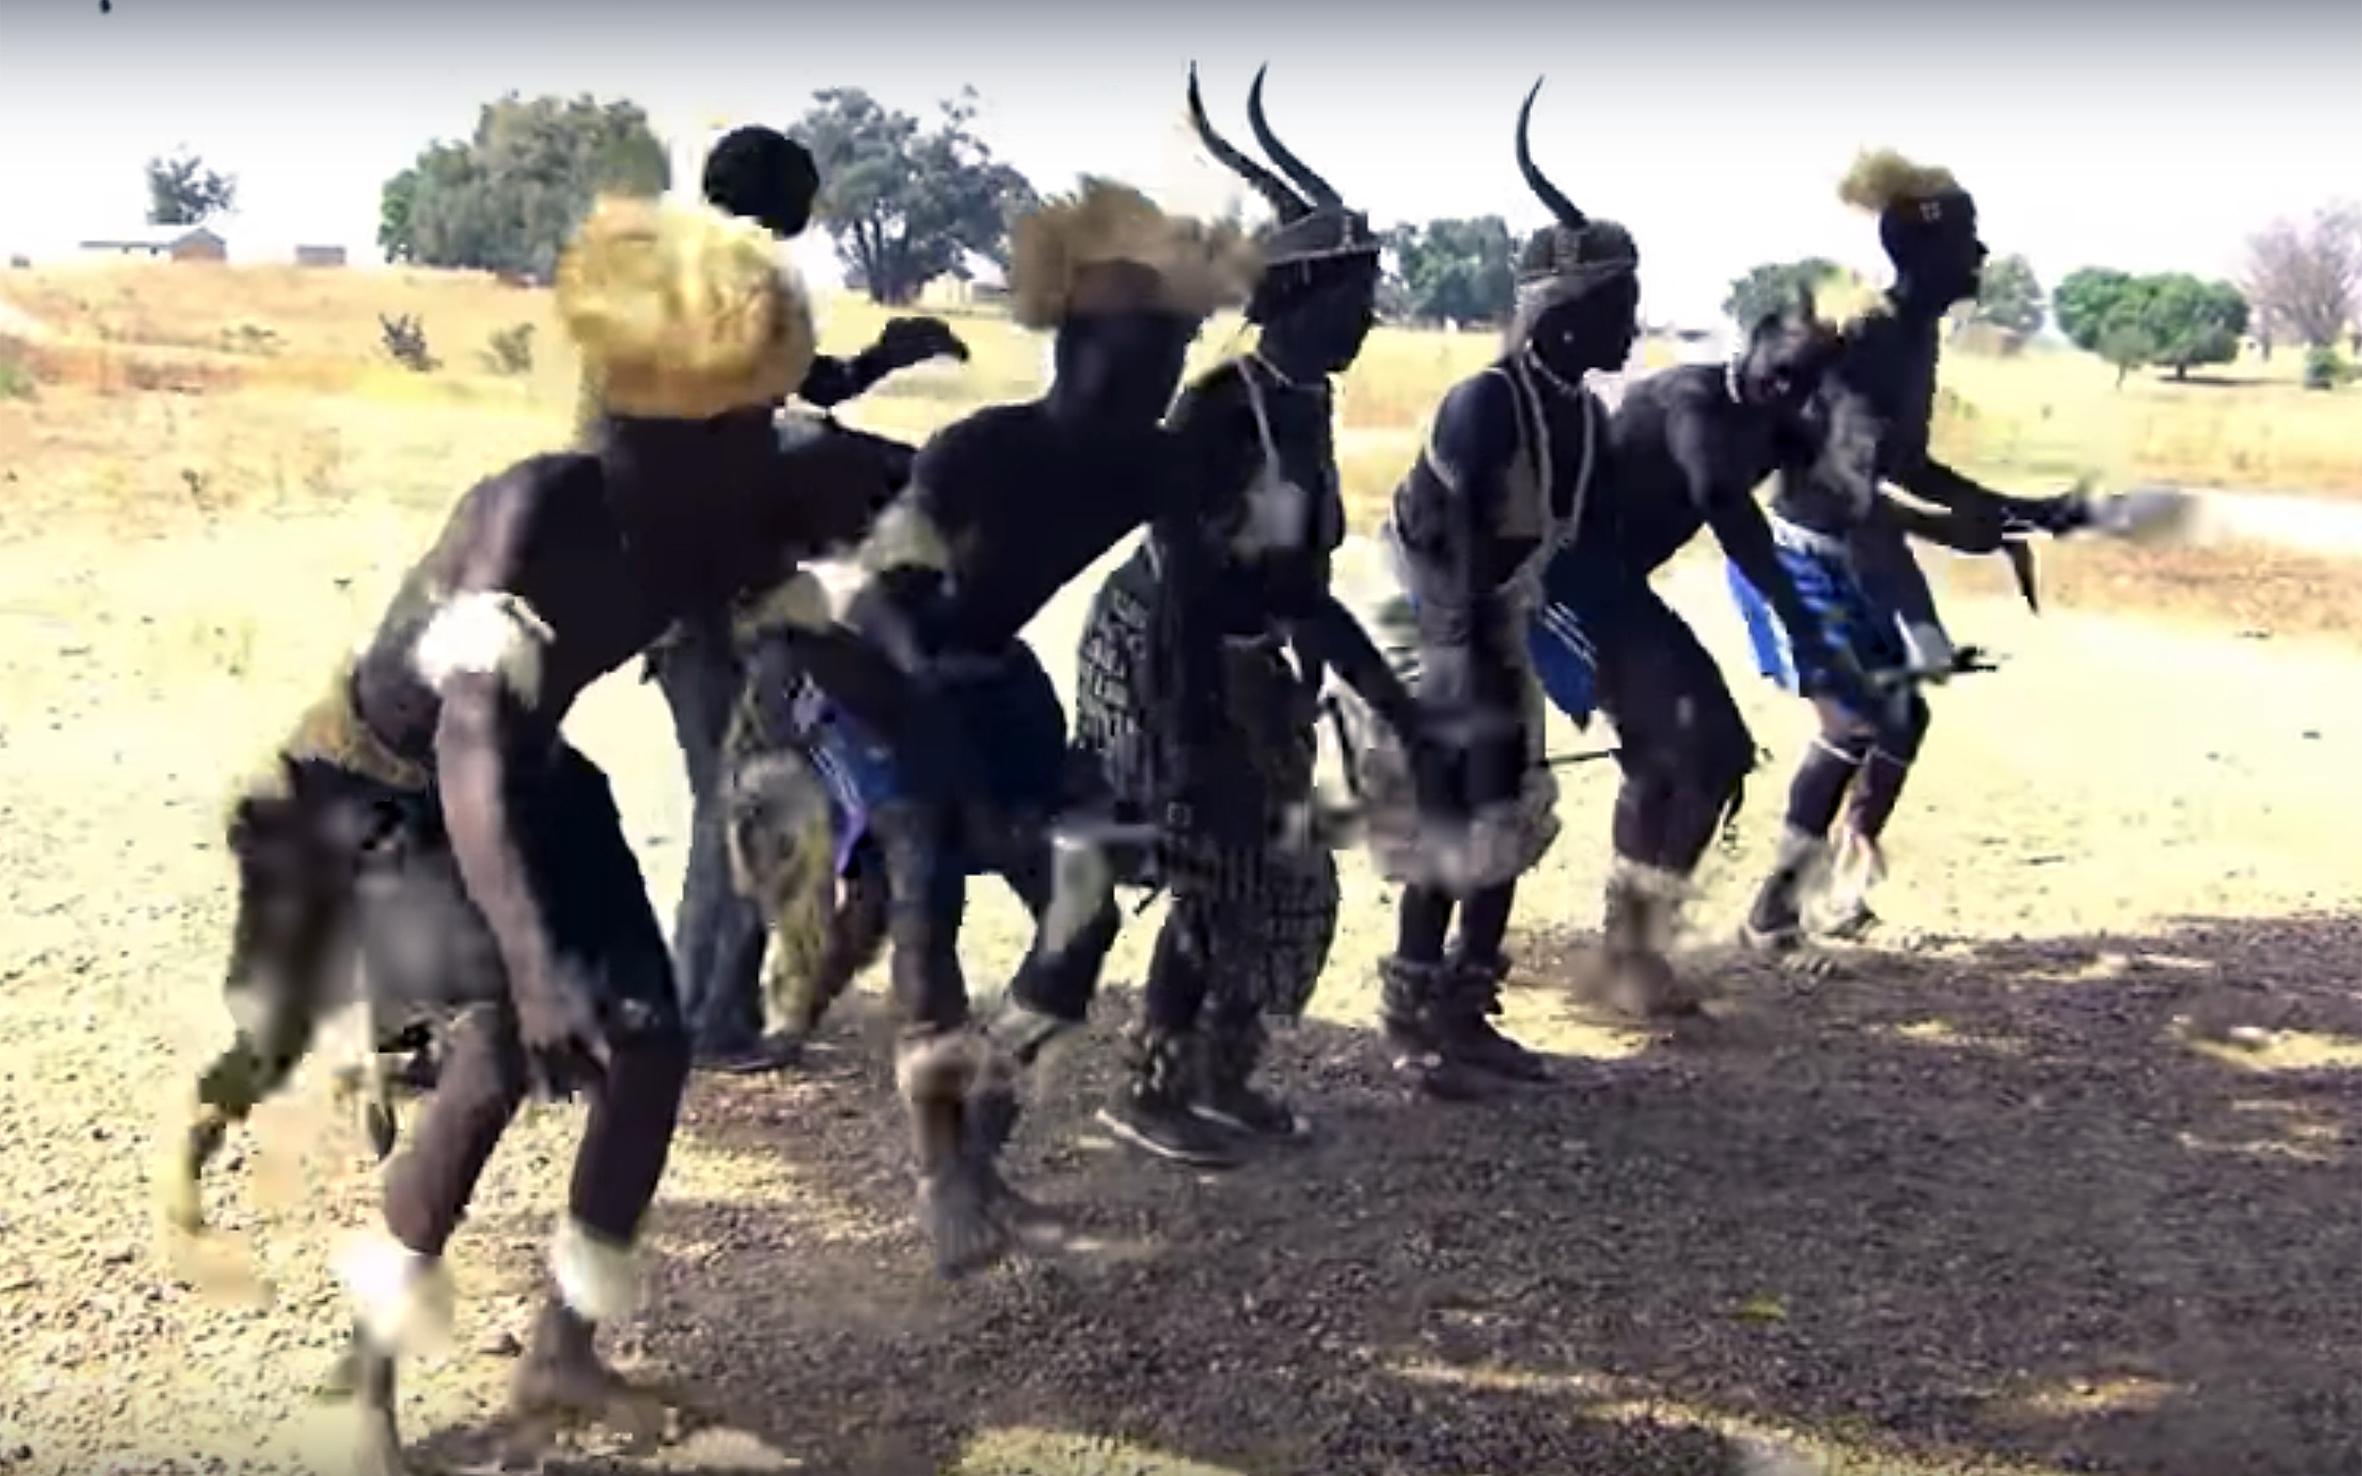 858.Tamberma / Togo - Tamberma is an amazing traditional dance of Tamberma People in North of Togo. The region is called also Koutammakou and the people Batammariba.